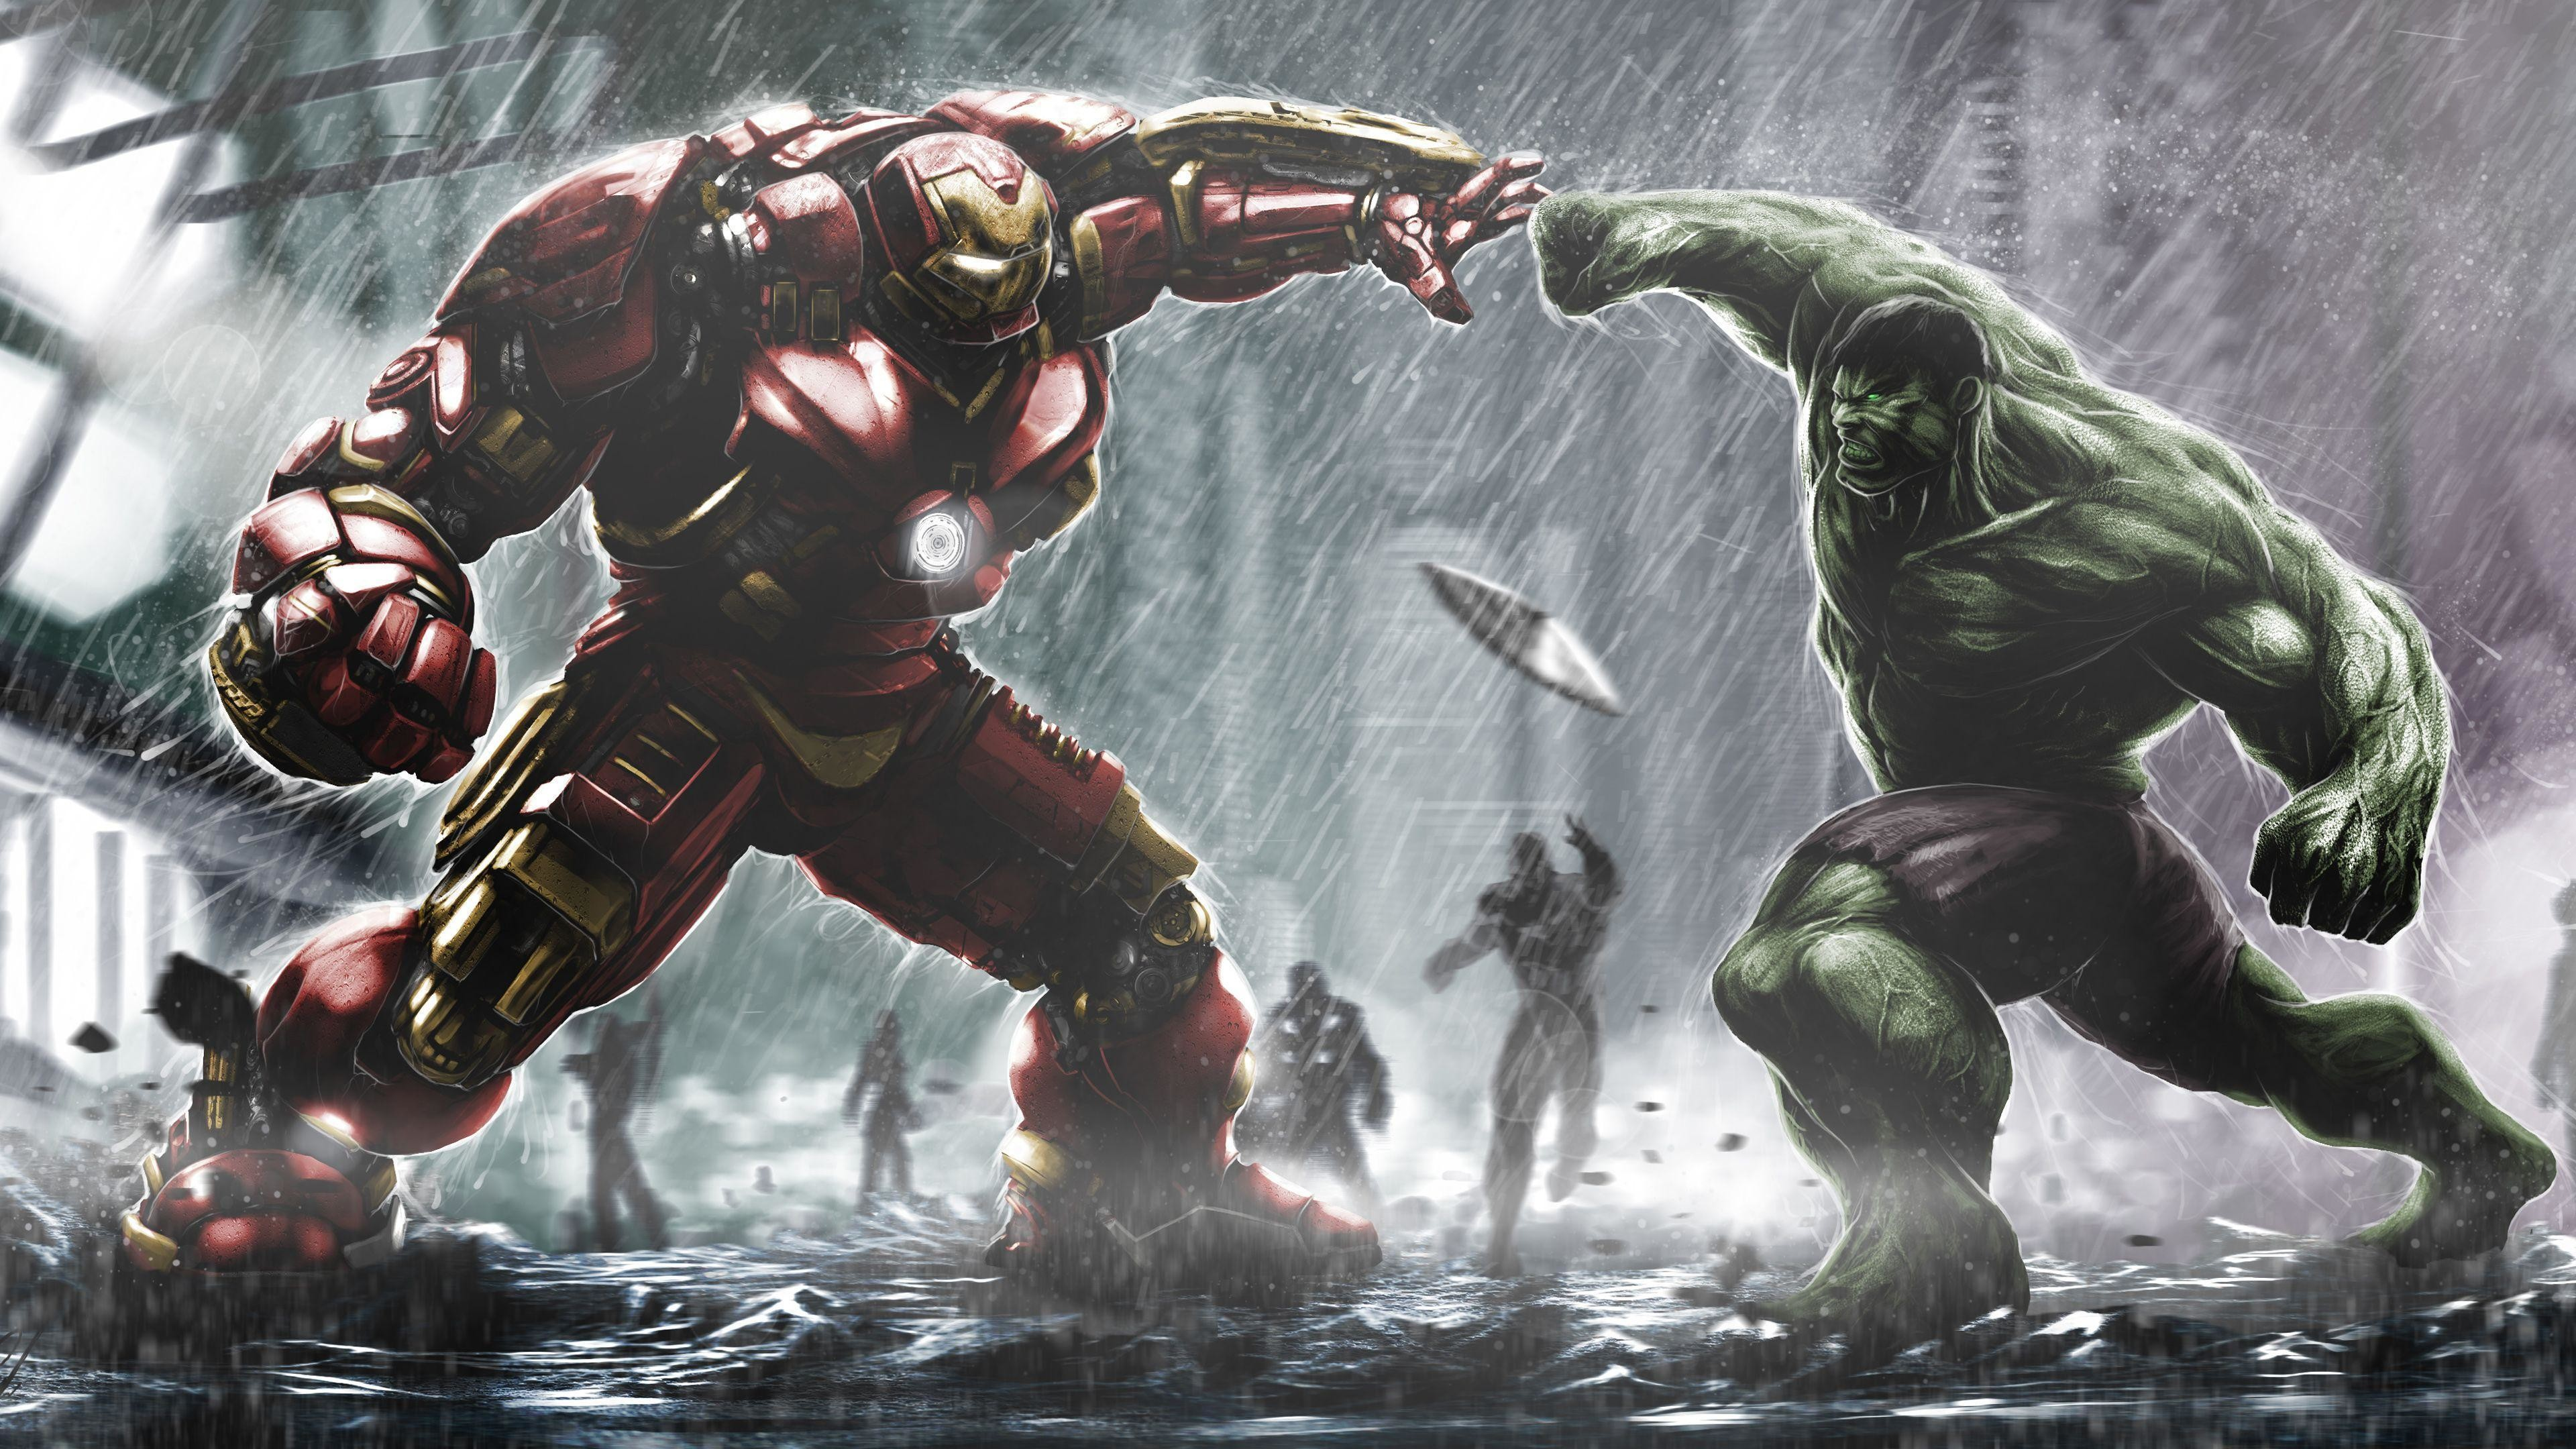 Hulk vs Hulkbuster Wallpapers 73 images 3840x2160